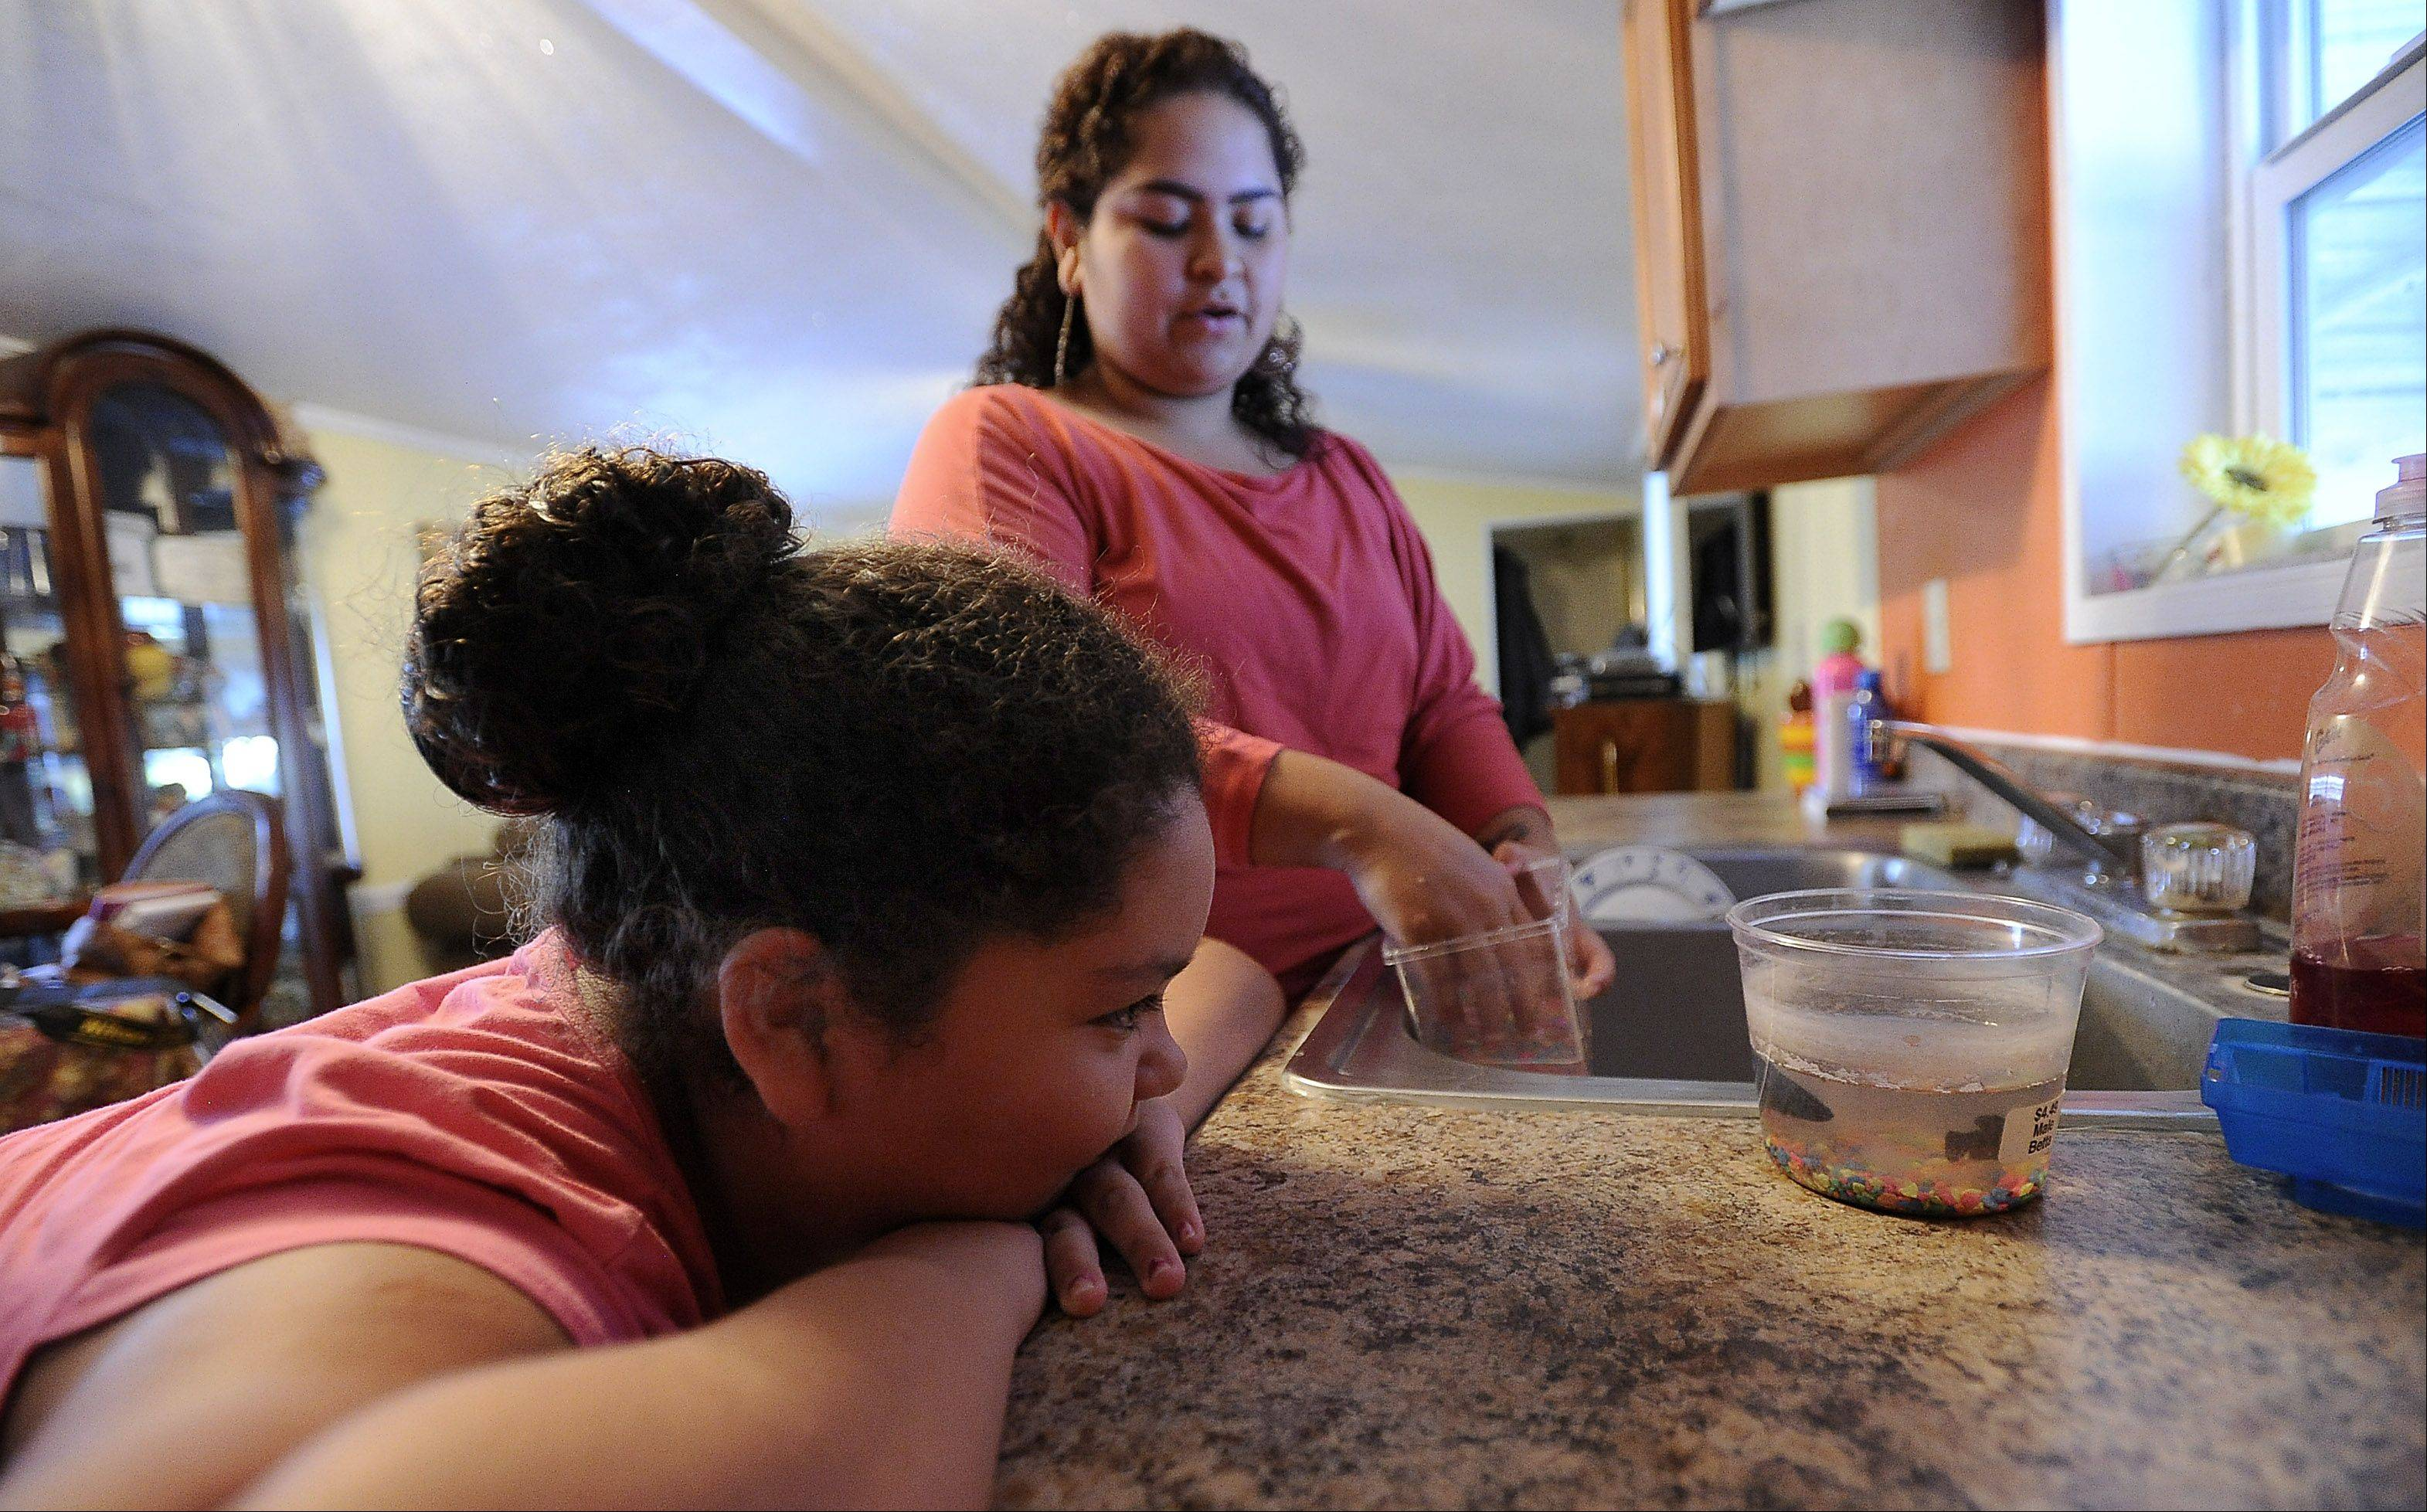 Since losing their mother 2� years ago, Greta Ramirez, 12, and her sister Karen Ramirez, 22, of Des Plaines have had to take on household duties, which include cleaning the fish tank.